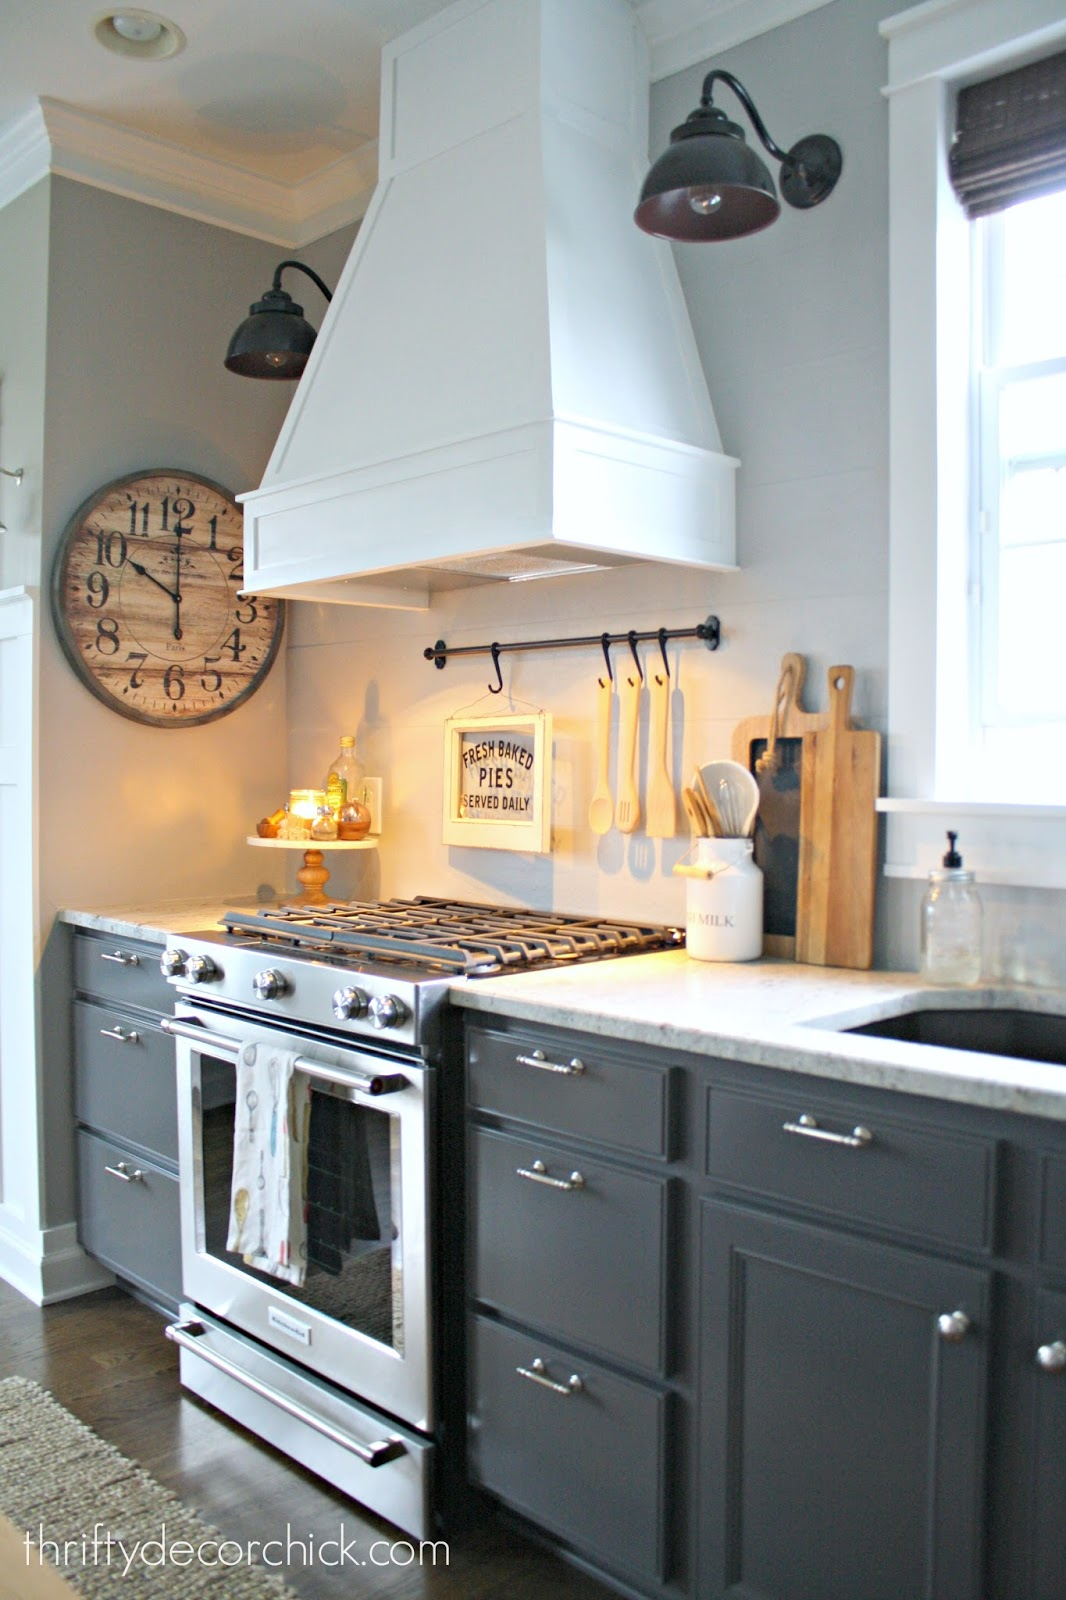 Kitchen diys details and sources from thrifty decor chick for Kitchen range hood images